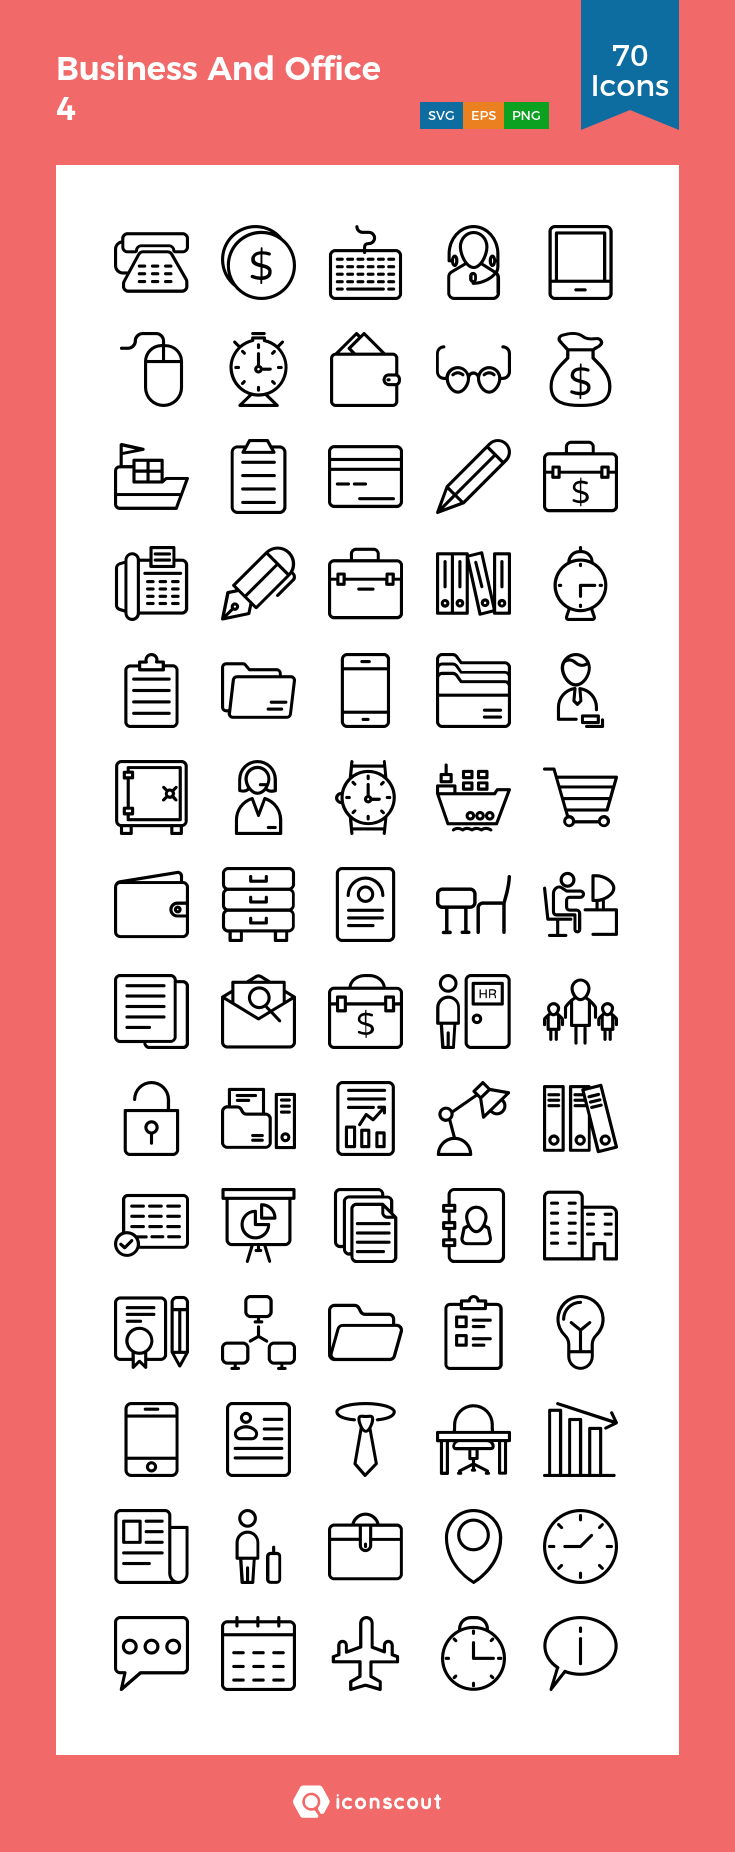 Download Business And Office 4 Icon Pack Available In Svg Png Eps Ai Icon Fonts Icon Pack Icon Icon Font